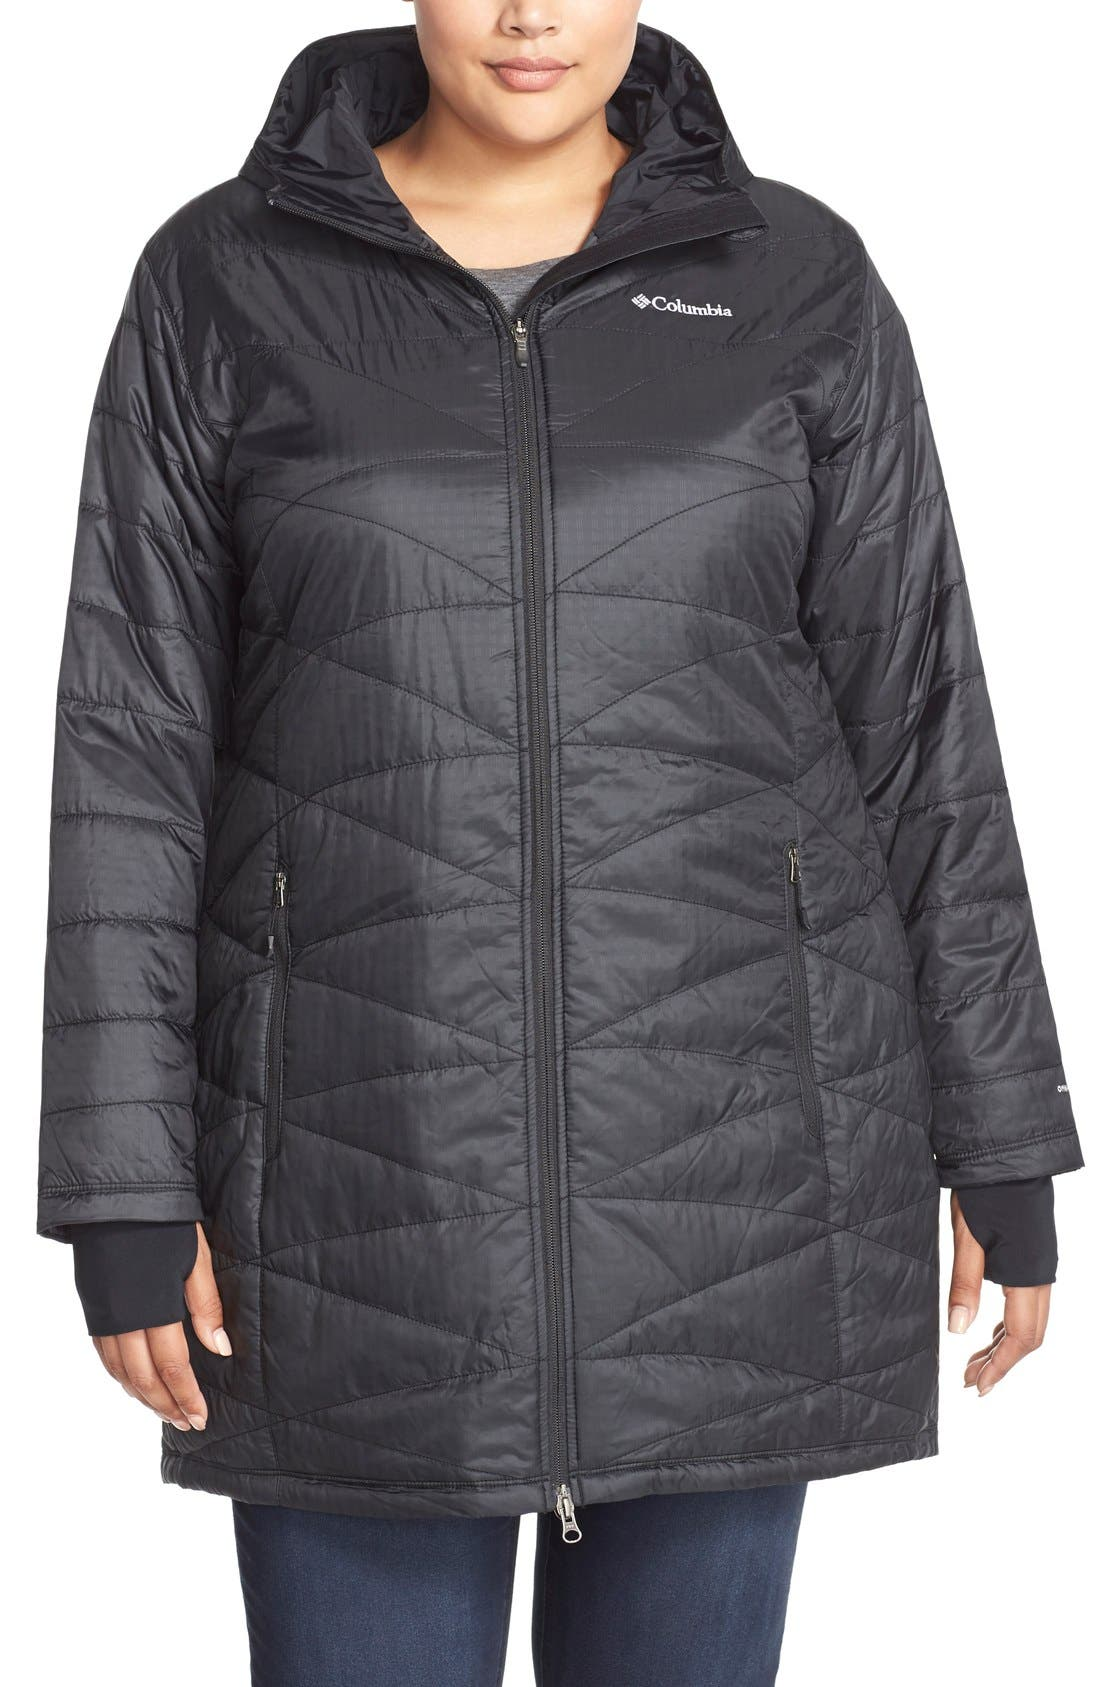 Alternate Image 1 Selected - Columbia Mighty Lite Hooded Jacket (Plus Size)